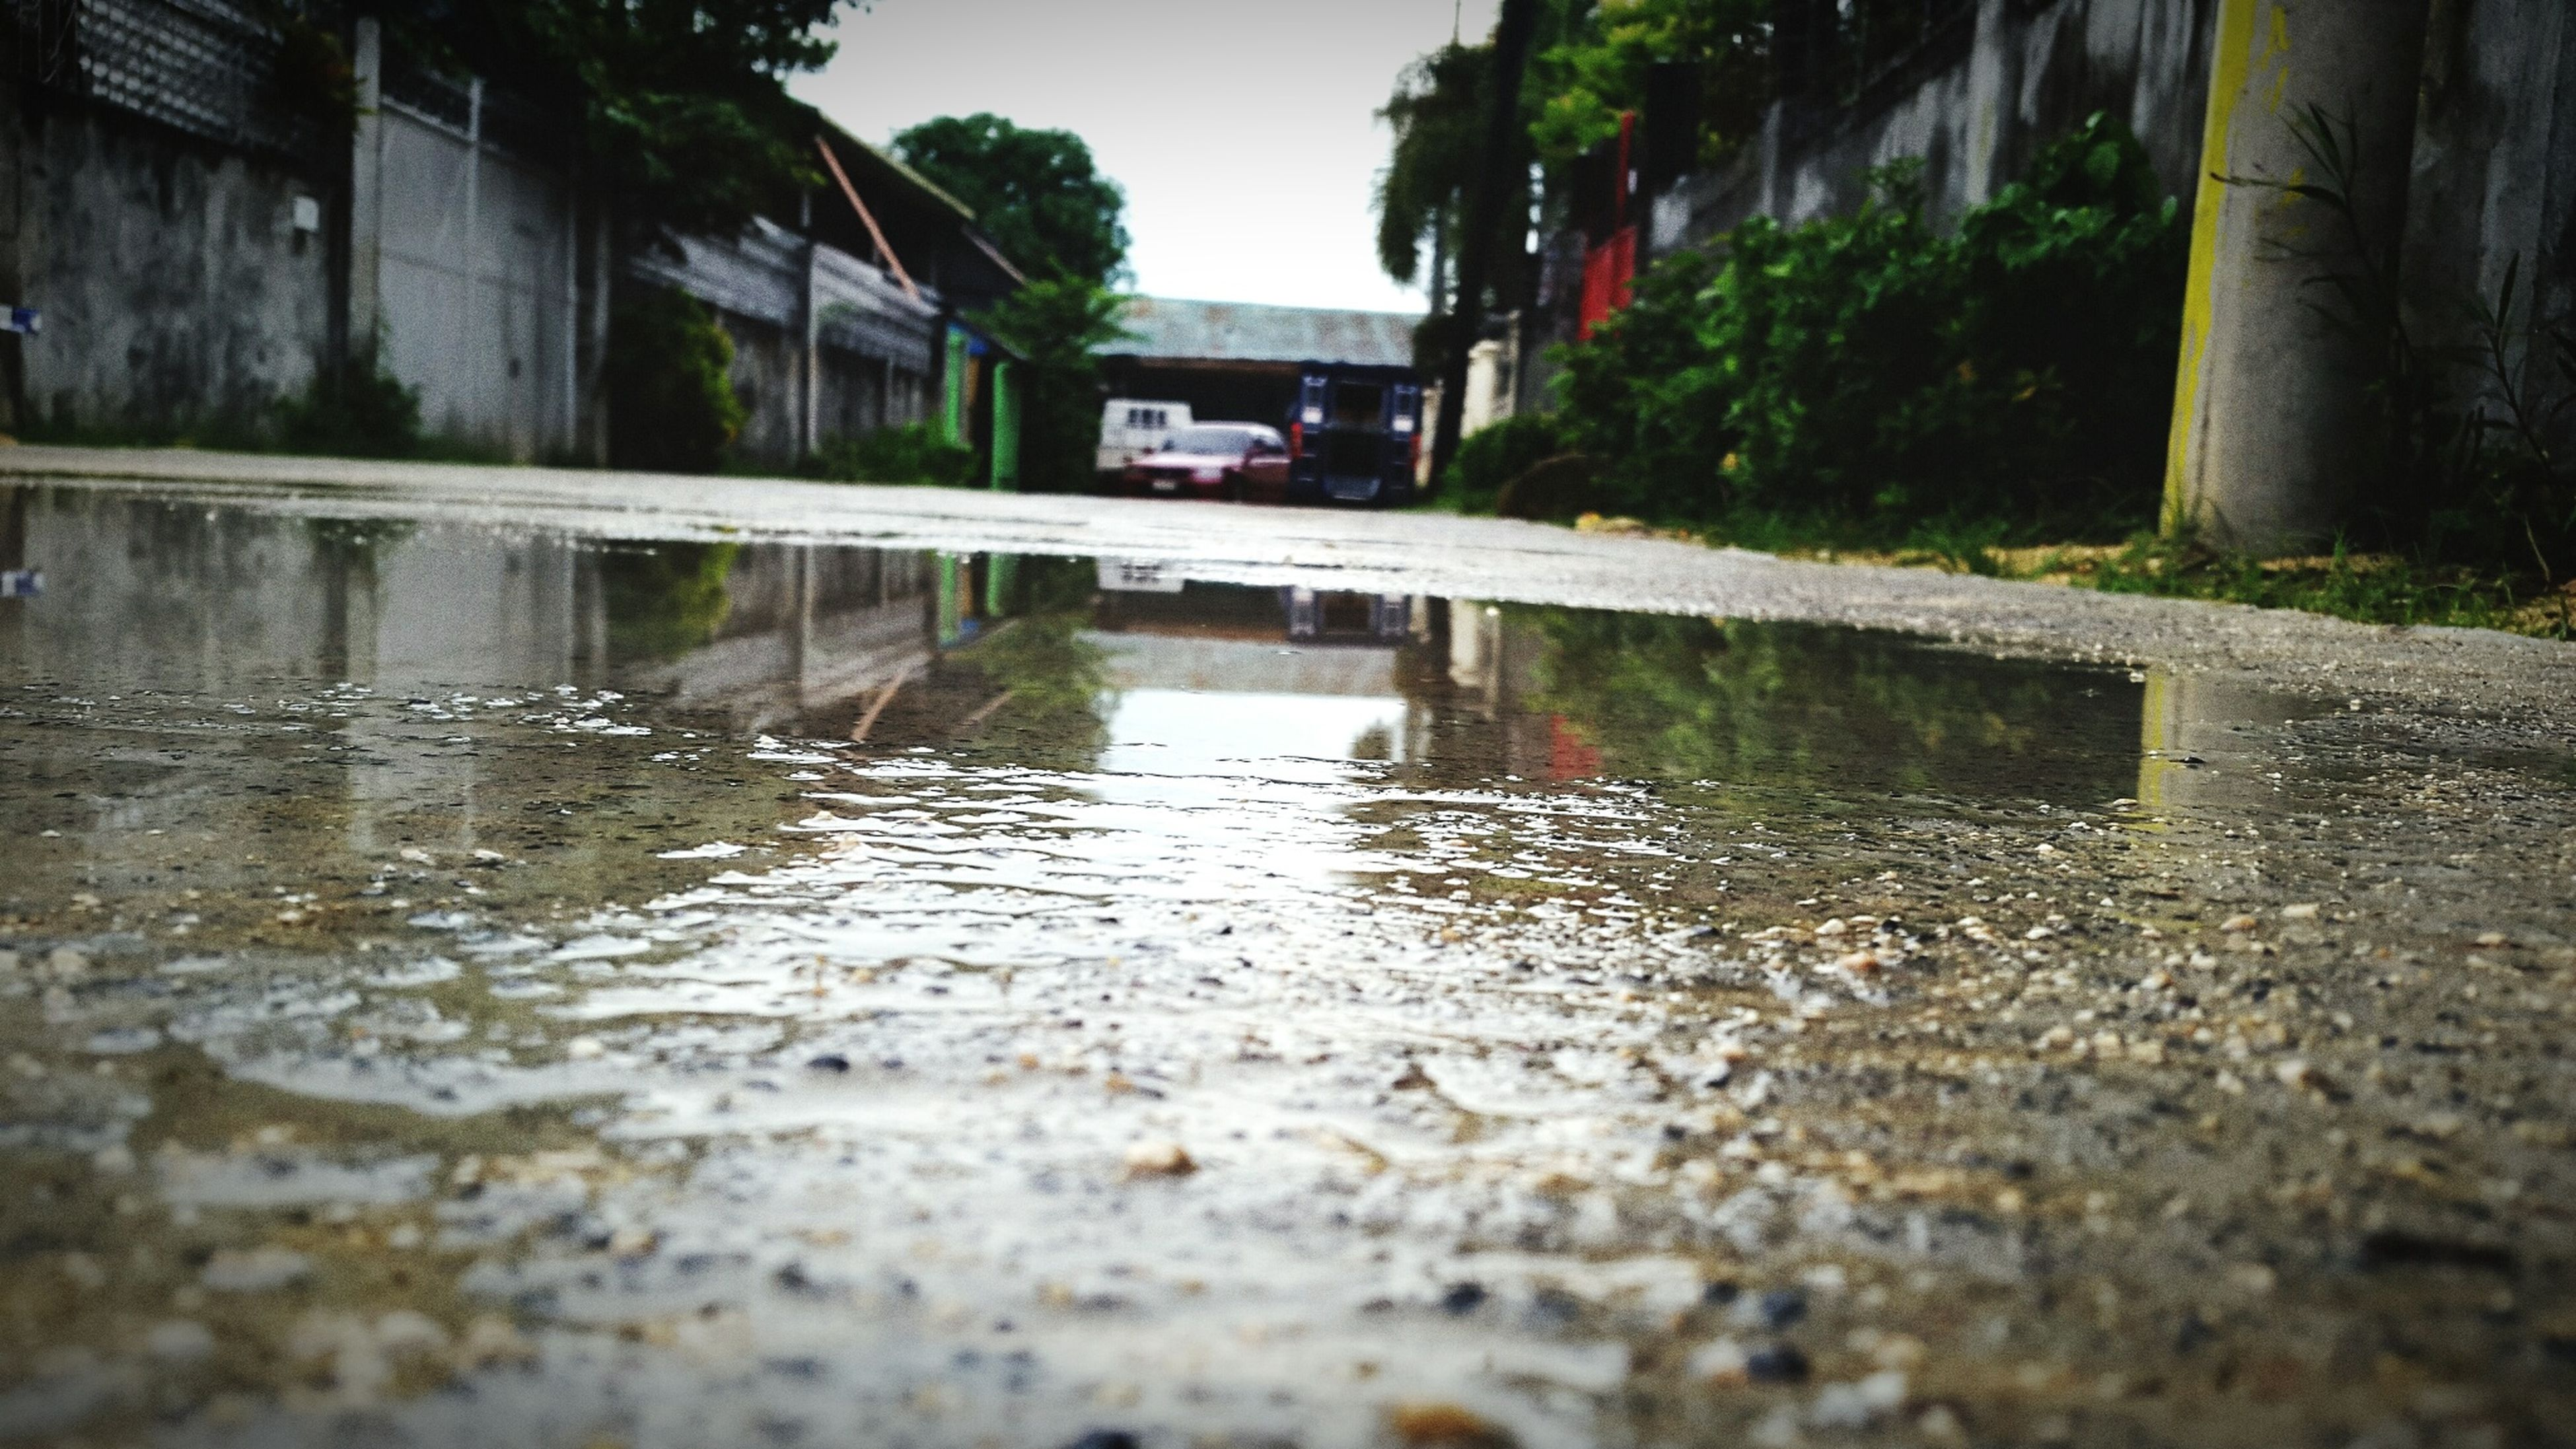 water, reflection, puddle, built structure, wet, outdoors, rainy season, rain, day, building exterior, nature, architecture, rainfall, no people, tree, sky